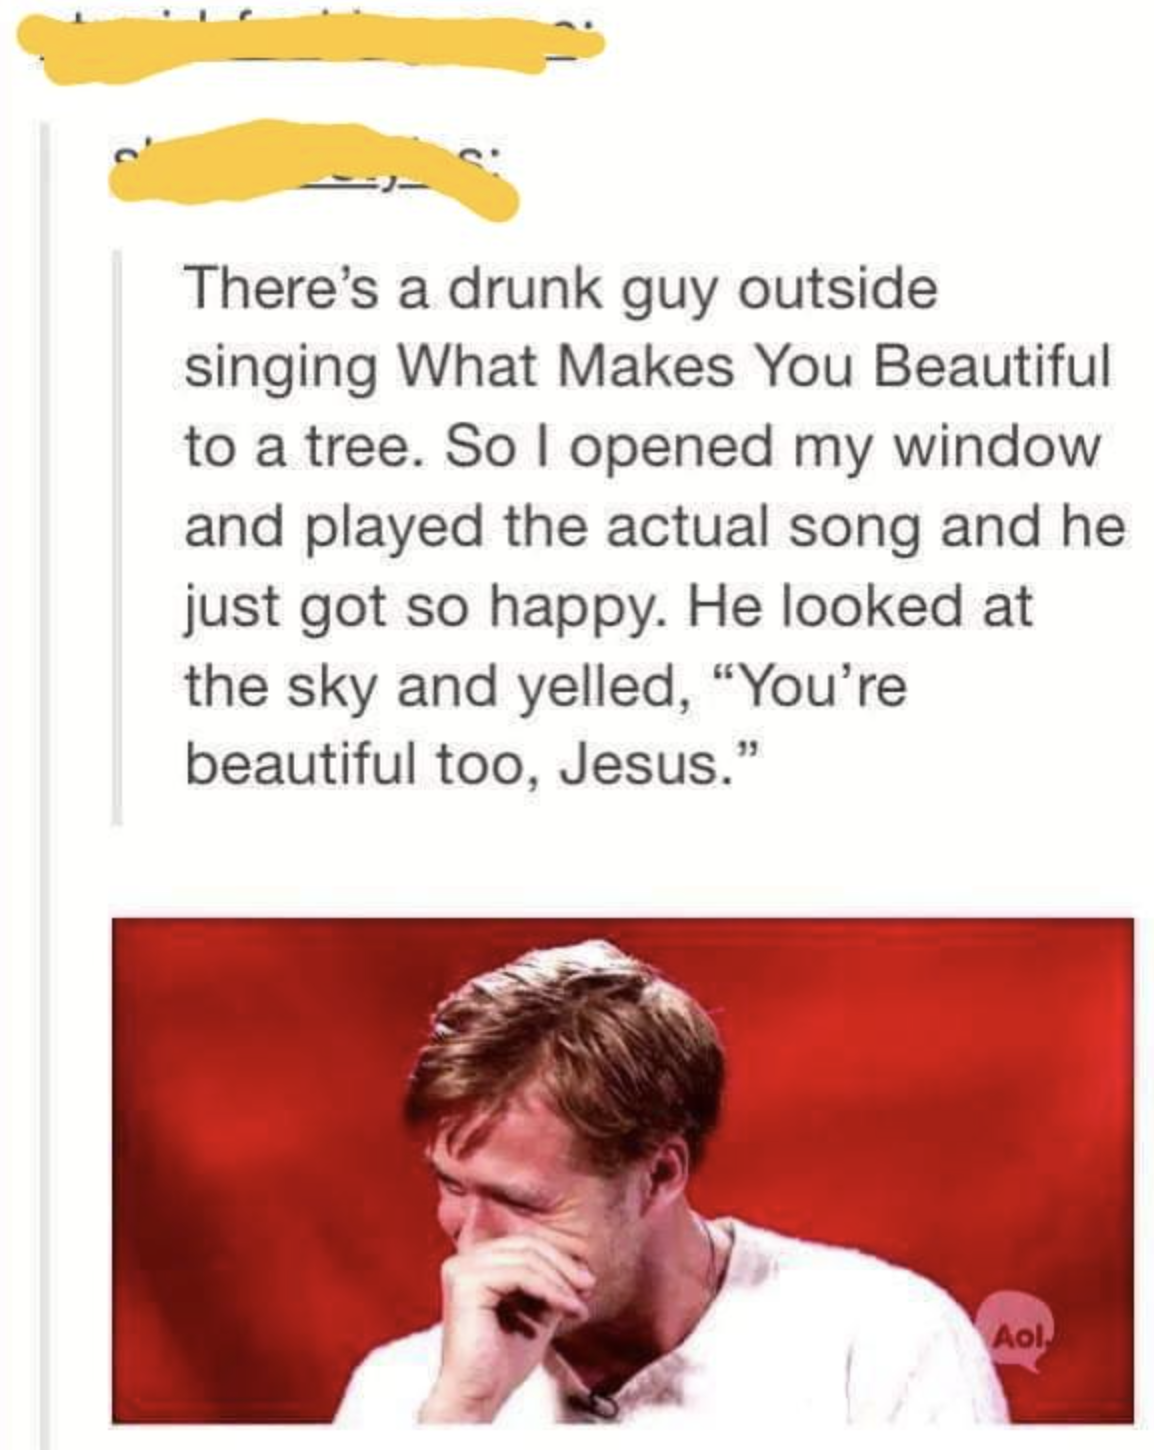 drunk person who sings One Direction to a tree